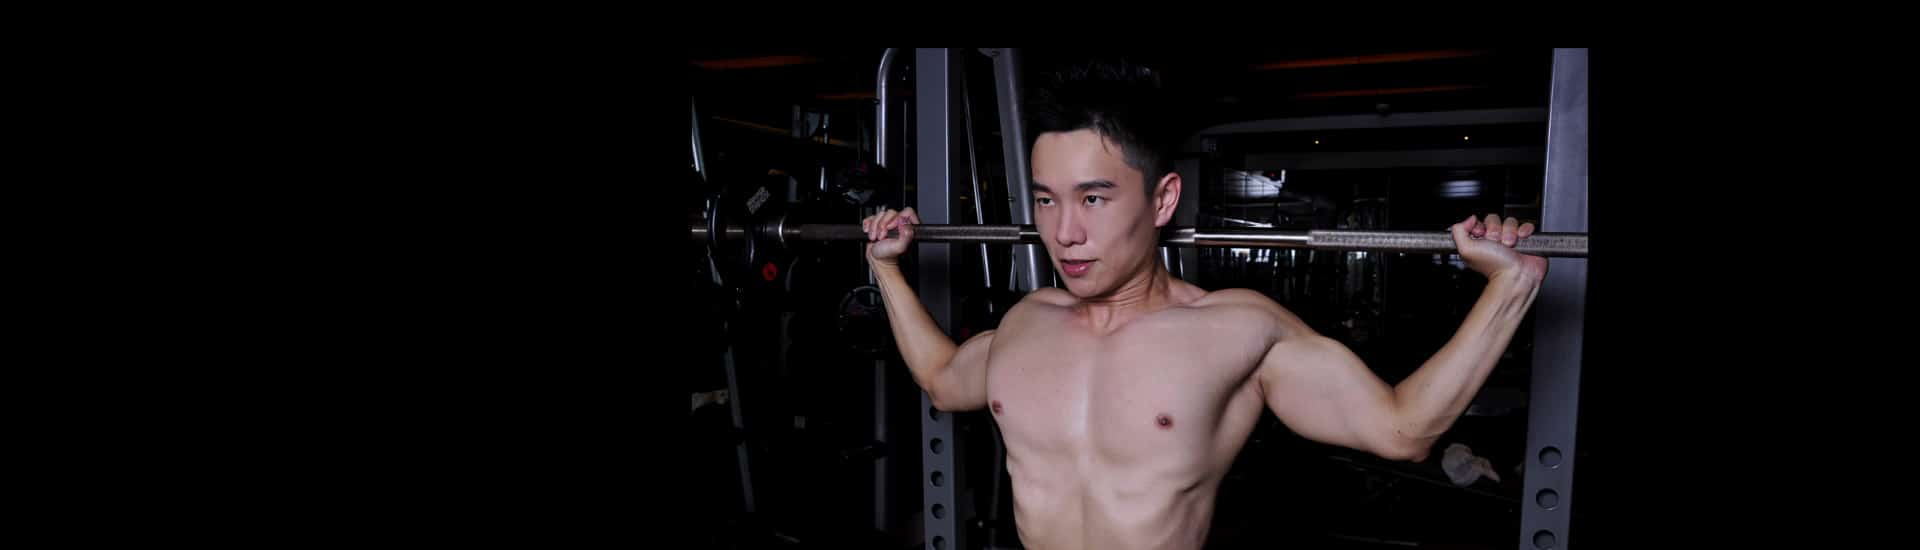 Personal Trainer Banner 2- Lionel Lim